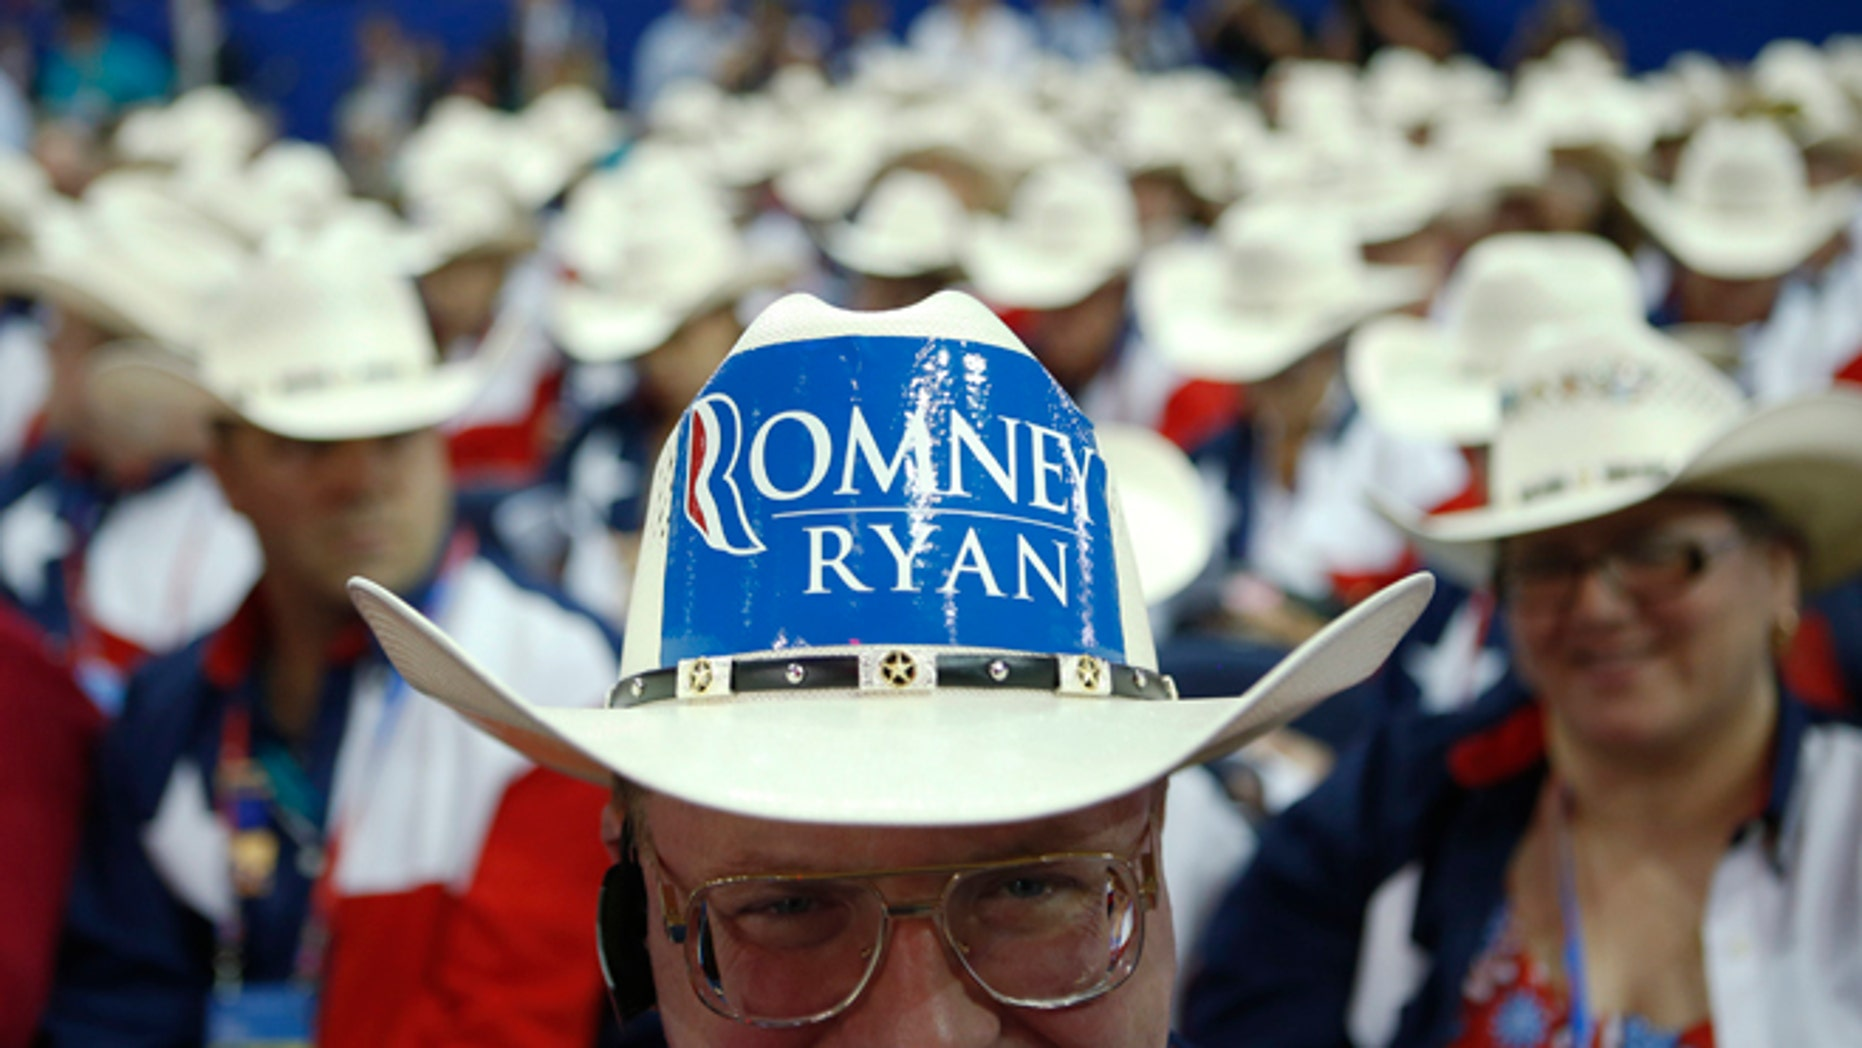 Texas delegate Clint Moore and the rest of Texas delegates fashion their cowboy hats at the Republican National Convention in Tampa, Fla., on Tuesday, Aug. 28, 2012. (AP Photo/Jae C. Hong)